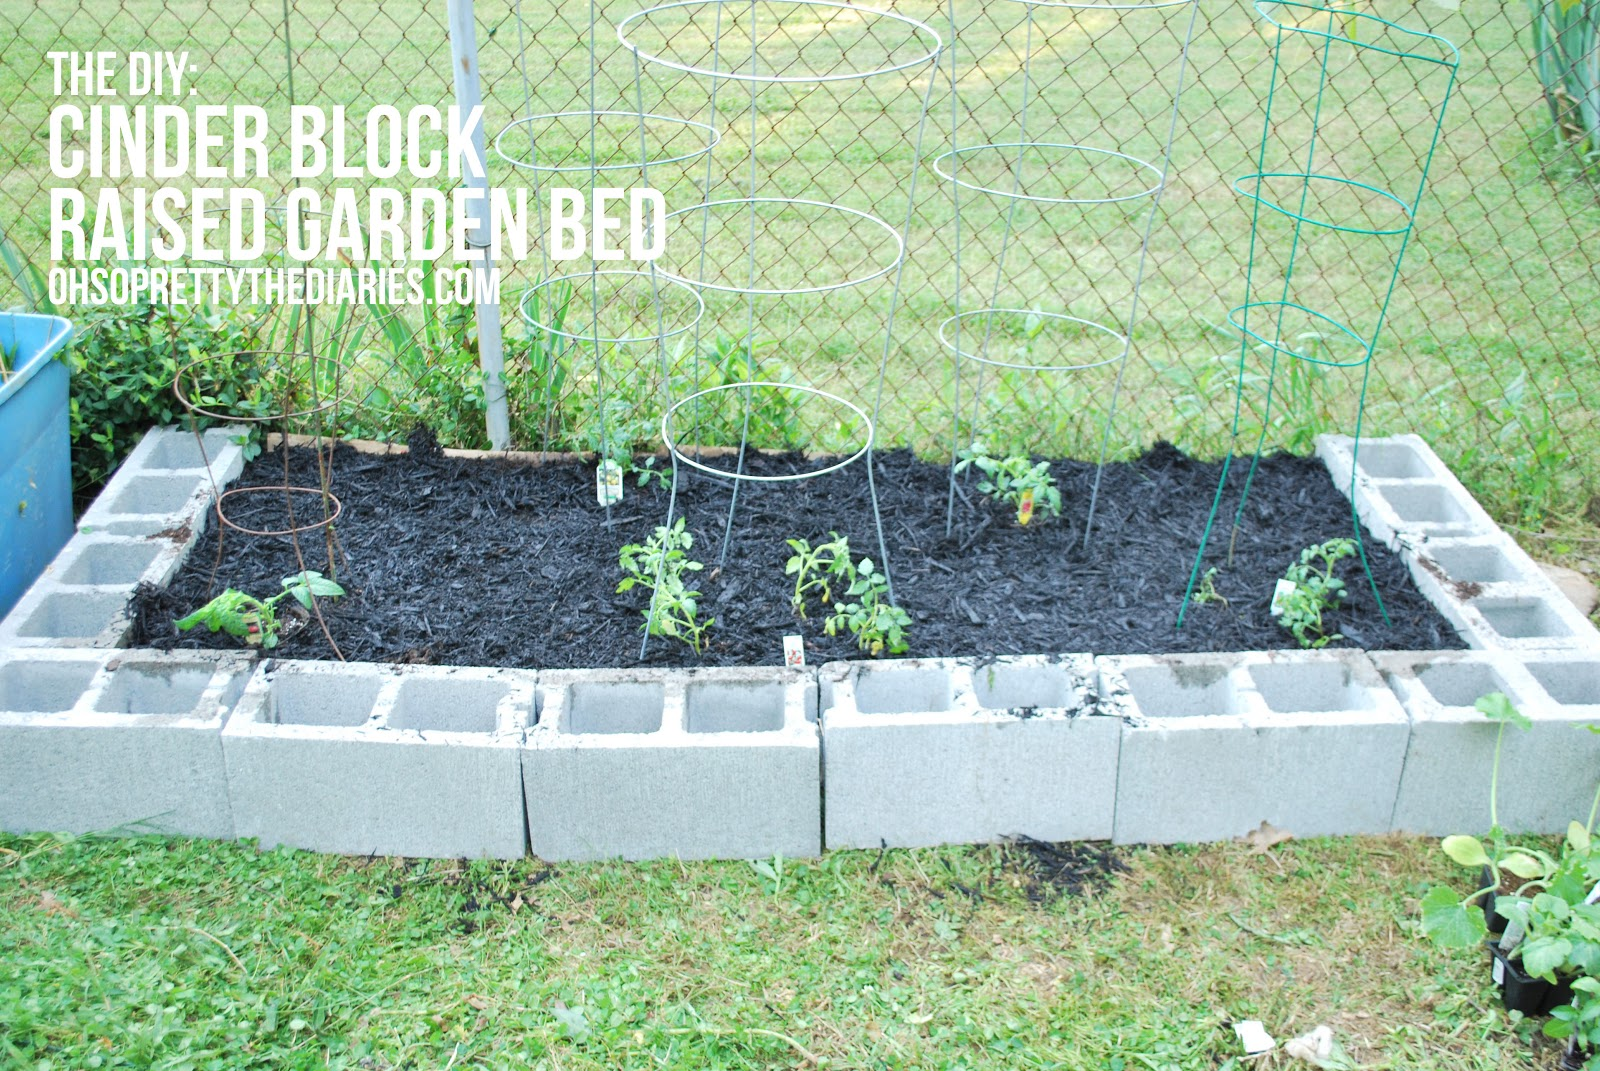 The Diy Cinder Block Raised Garden Bed Hey Wanderer